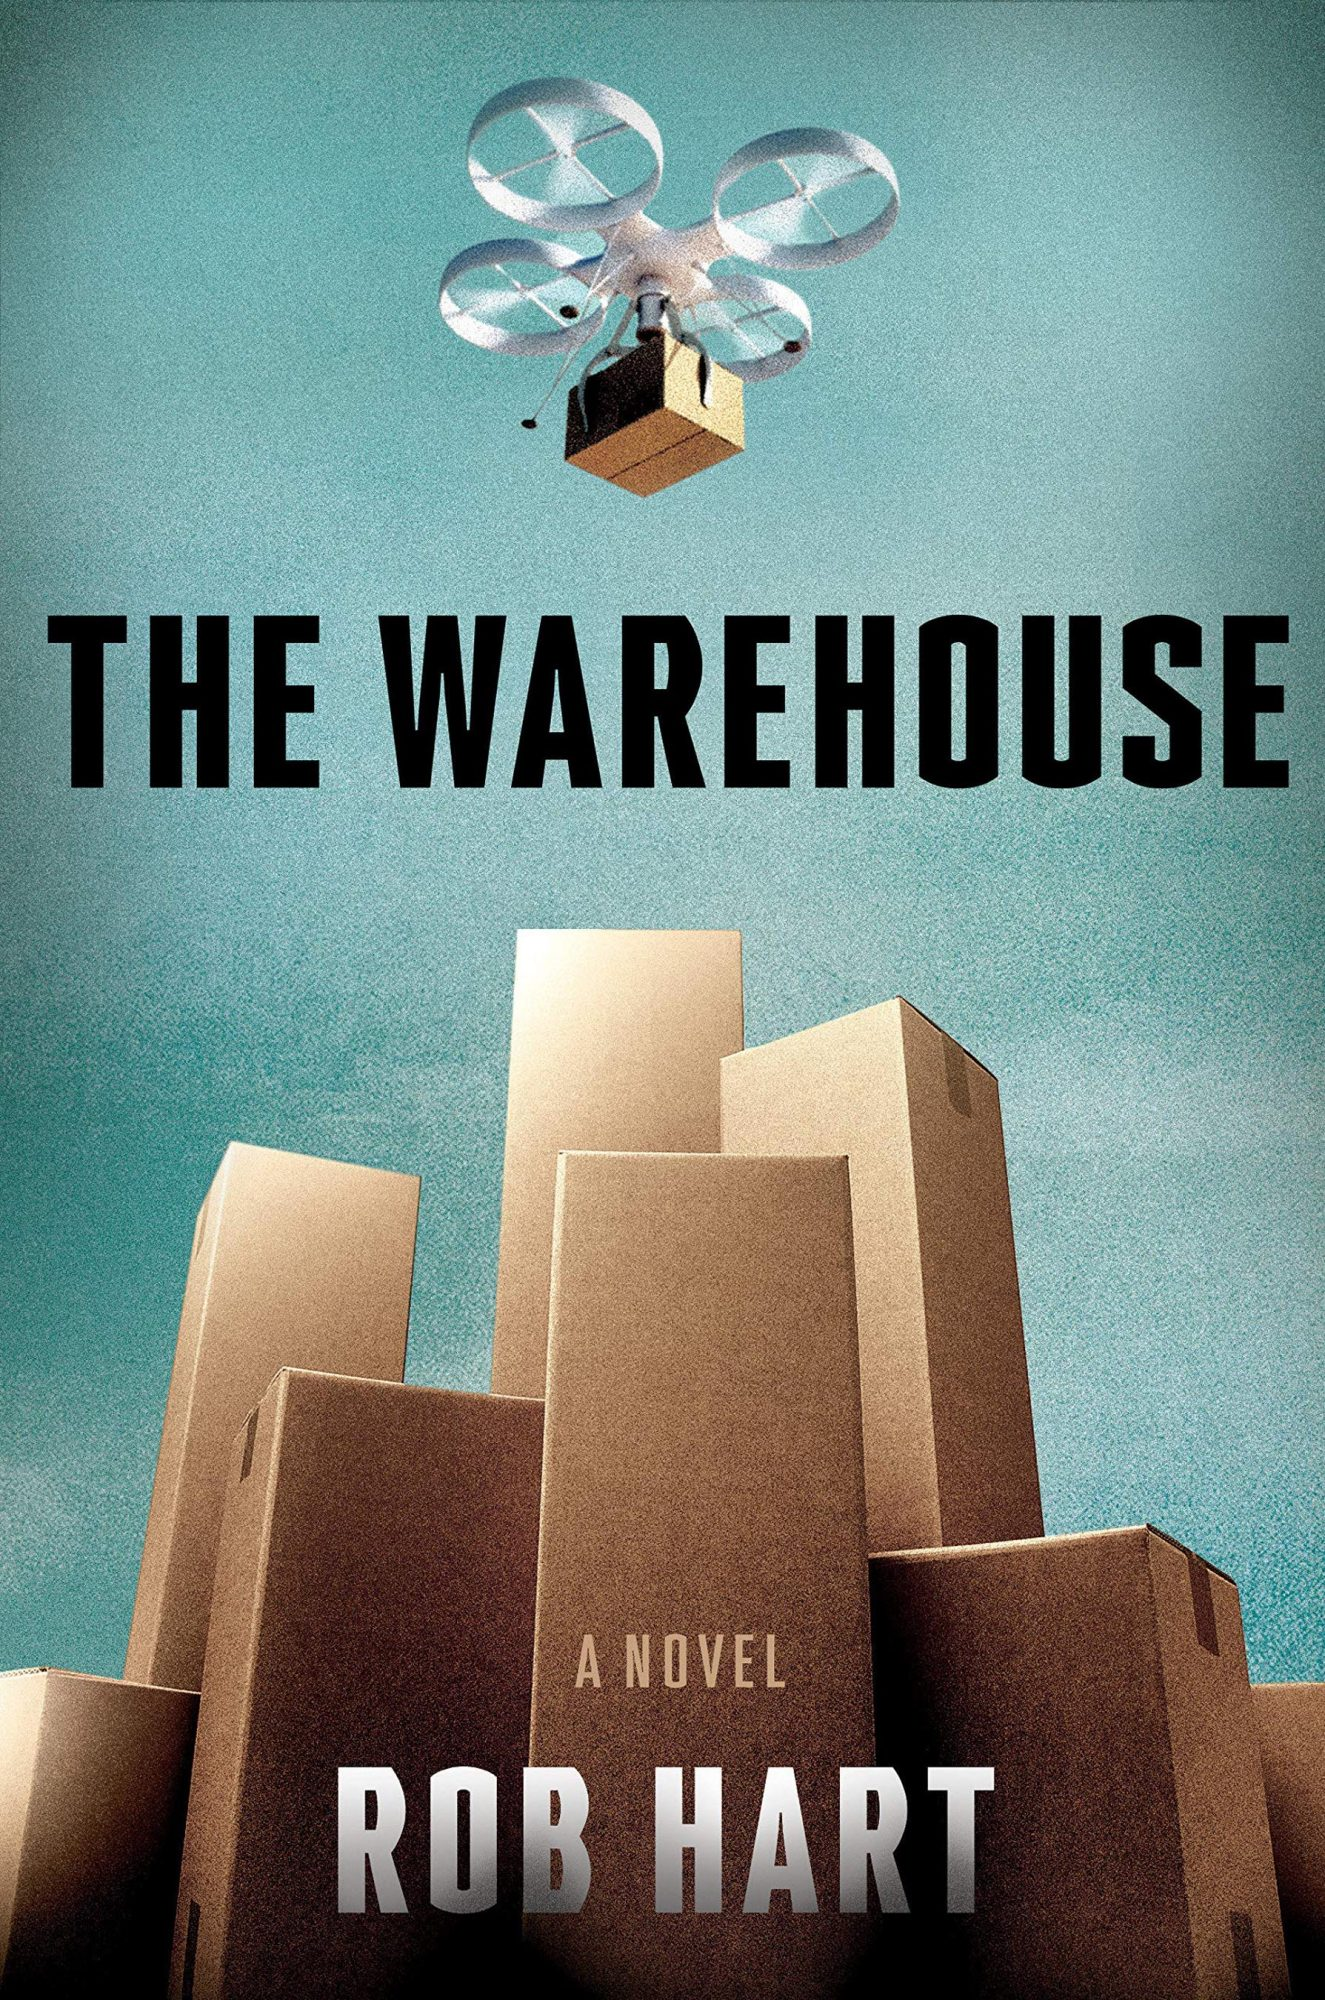 The Warehouse, by Rob Hart